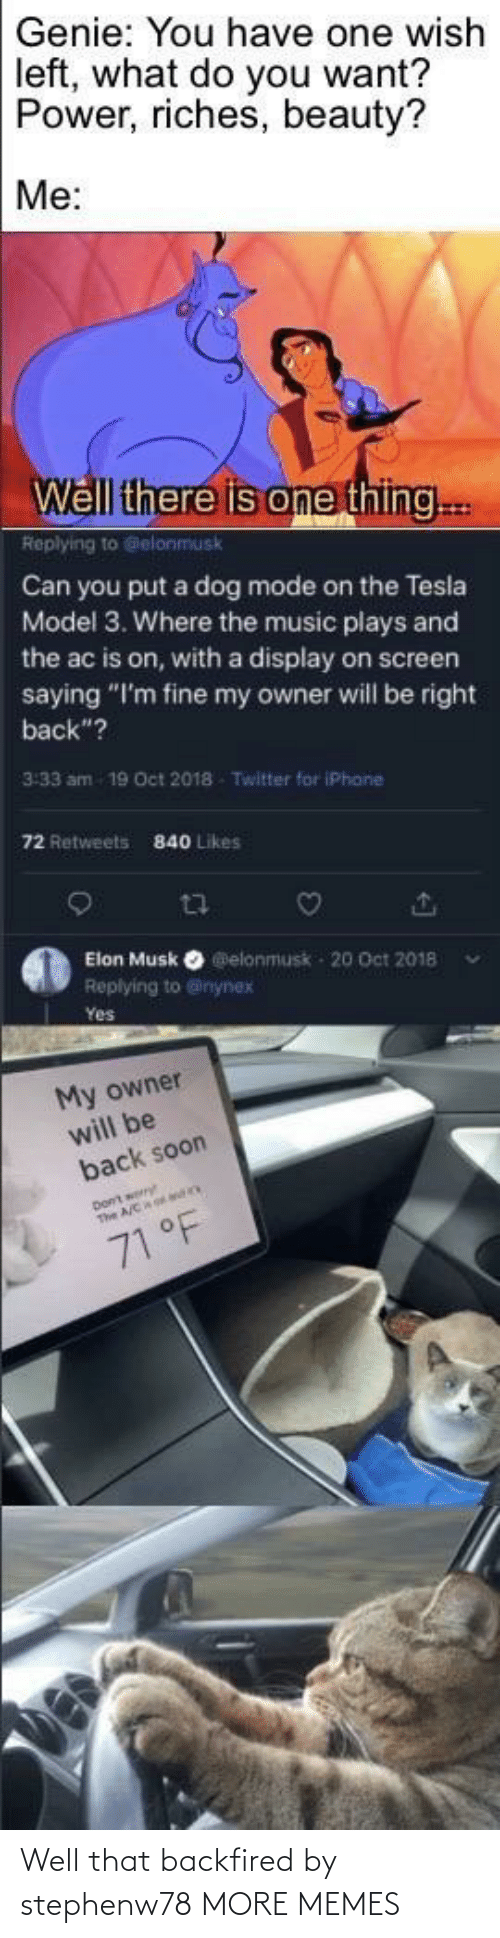 "saying: Genie: You have one wish  left, what do you want?  Power, riches, beauty?  Me:  Well there is one thing..  Replying to Gelonmusk  Can you put a dog mode on the Tesla  Model 3. Where the music plays and  the ac is on, with a display on screen  saying ""I'm fine my owner will be right  back""?  3:33 am  19 Oct 2018  Twitter for iPhane  72 Retweets  840 Likes  Elon Musk O elonmusk - 20 Oct 2018  Replying to @inynex  Yes  My owner  will be  back soon  71 °F Well that backfired by stephenw78 MORE MEMES"